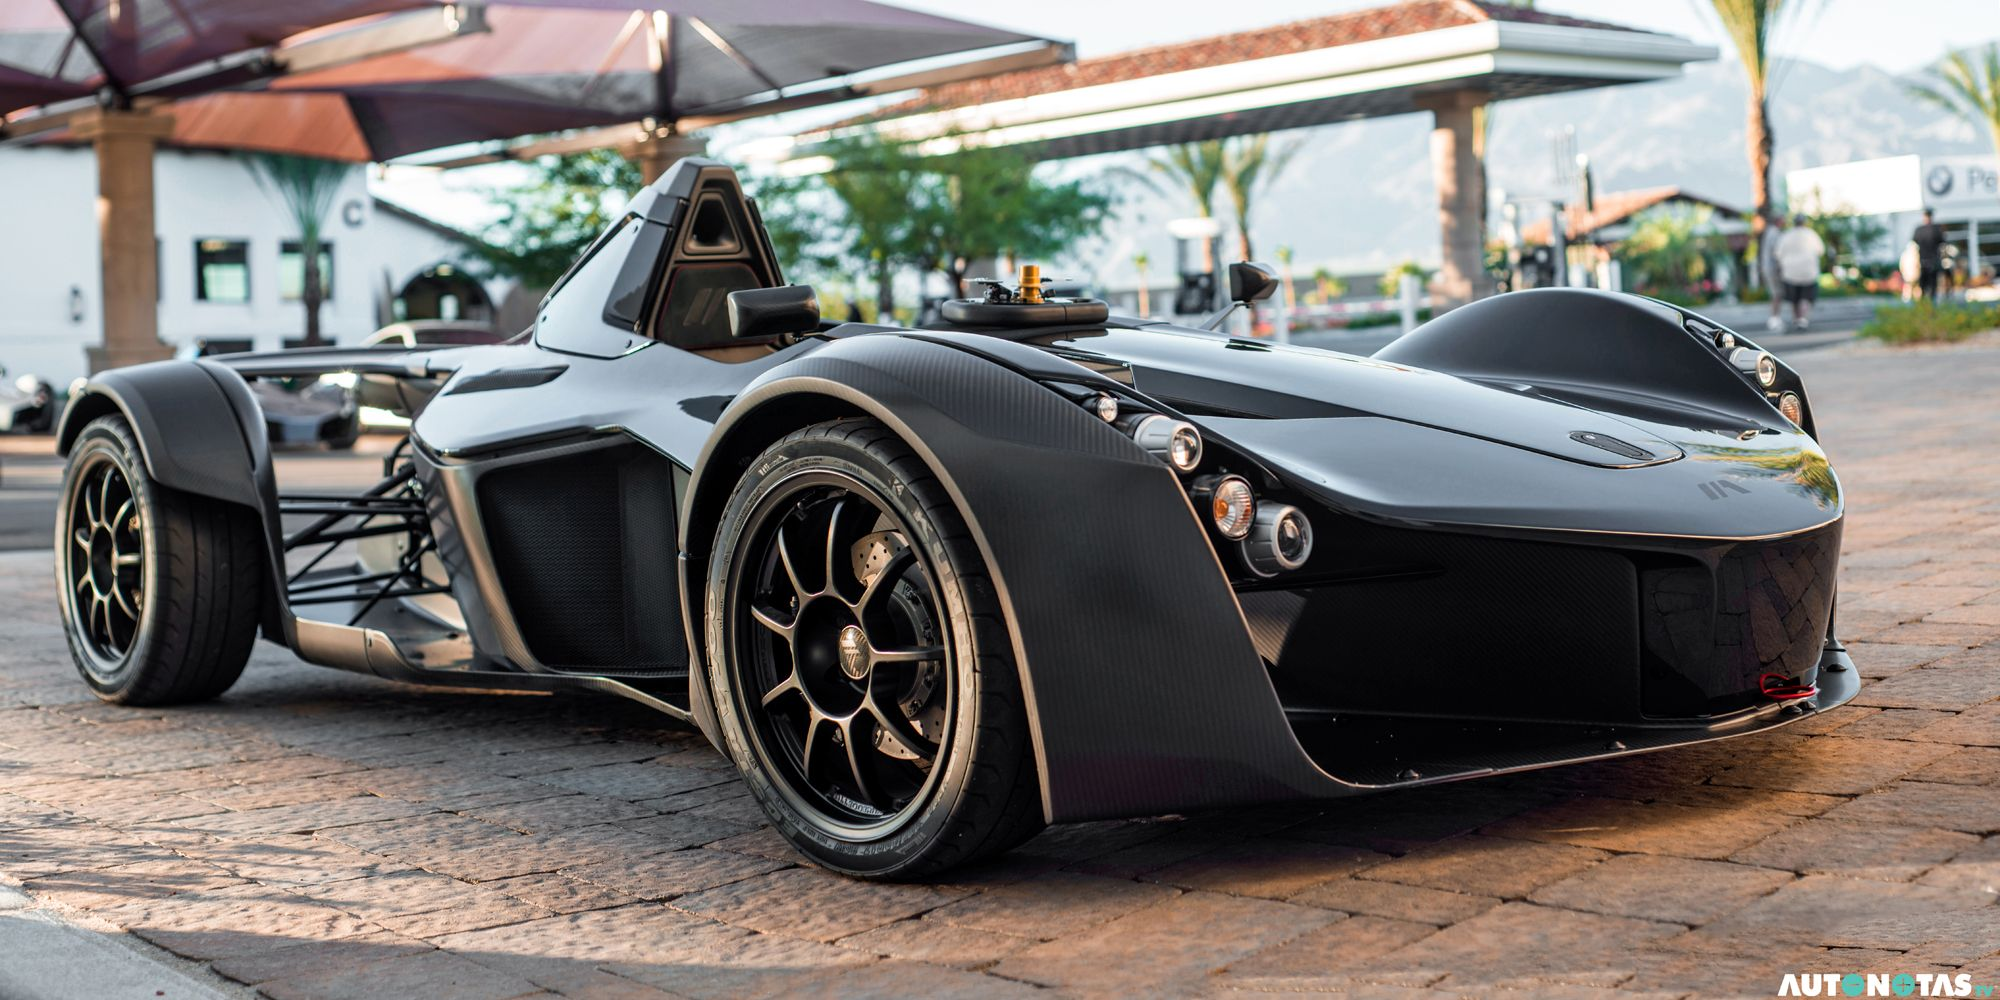 If you buy a BAC Mono, we hope all your friends have cars, too, because you sure won't be giving anyone a ride. As the name suggests, you only get one seat in the BAC Mono.